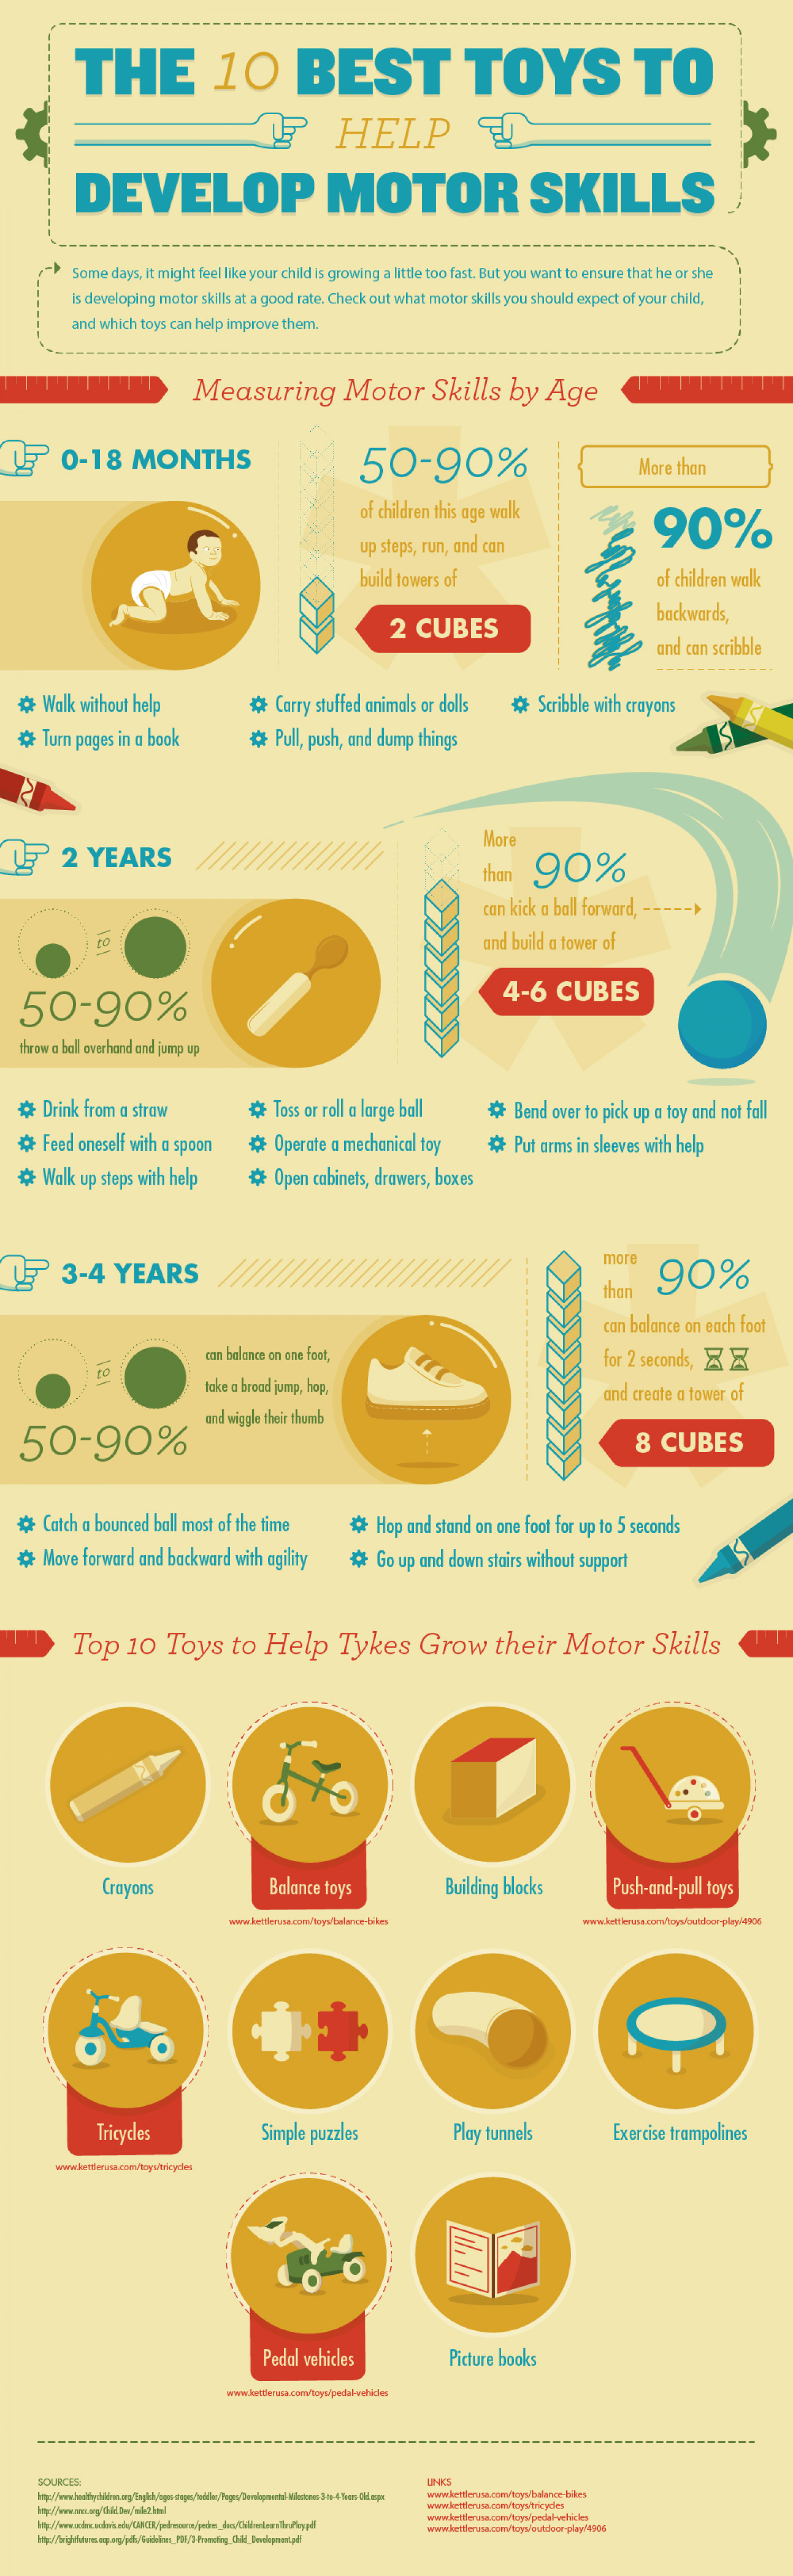 The 10 Best Toys to Help Develop Motor Skills Infographic